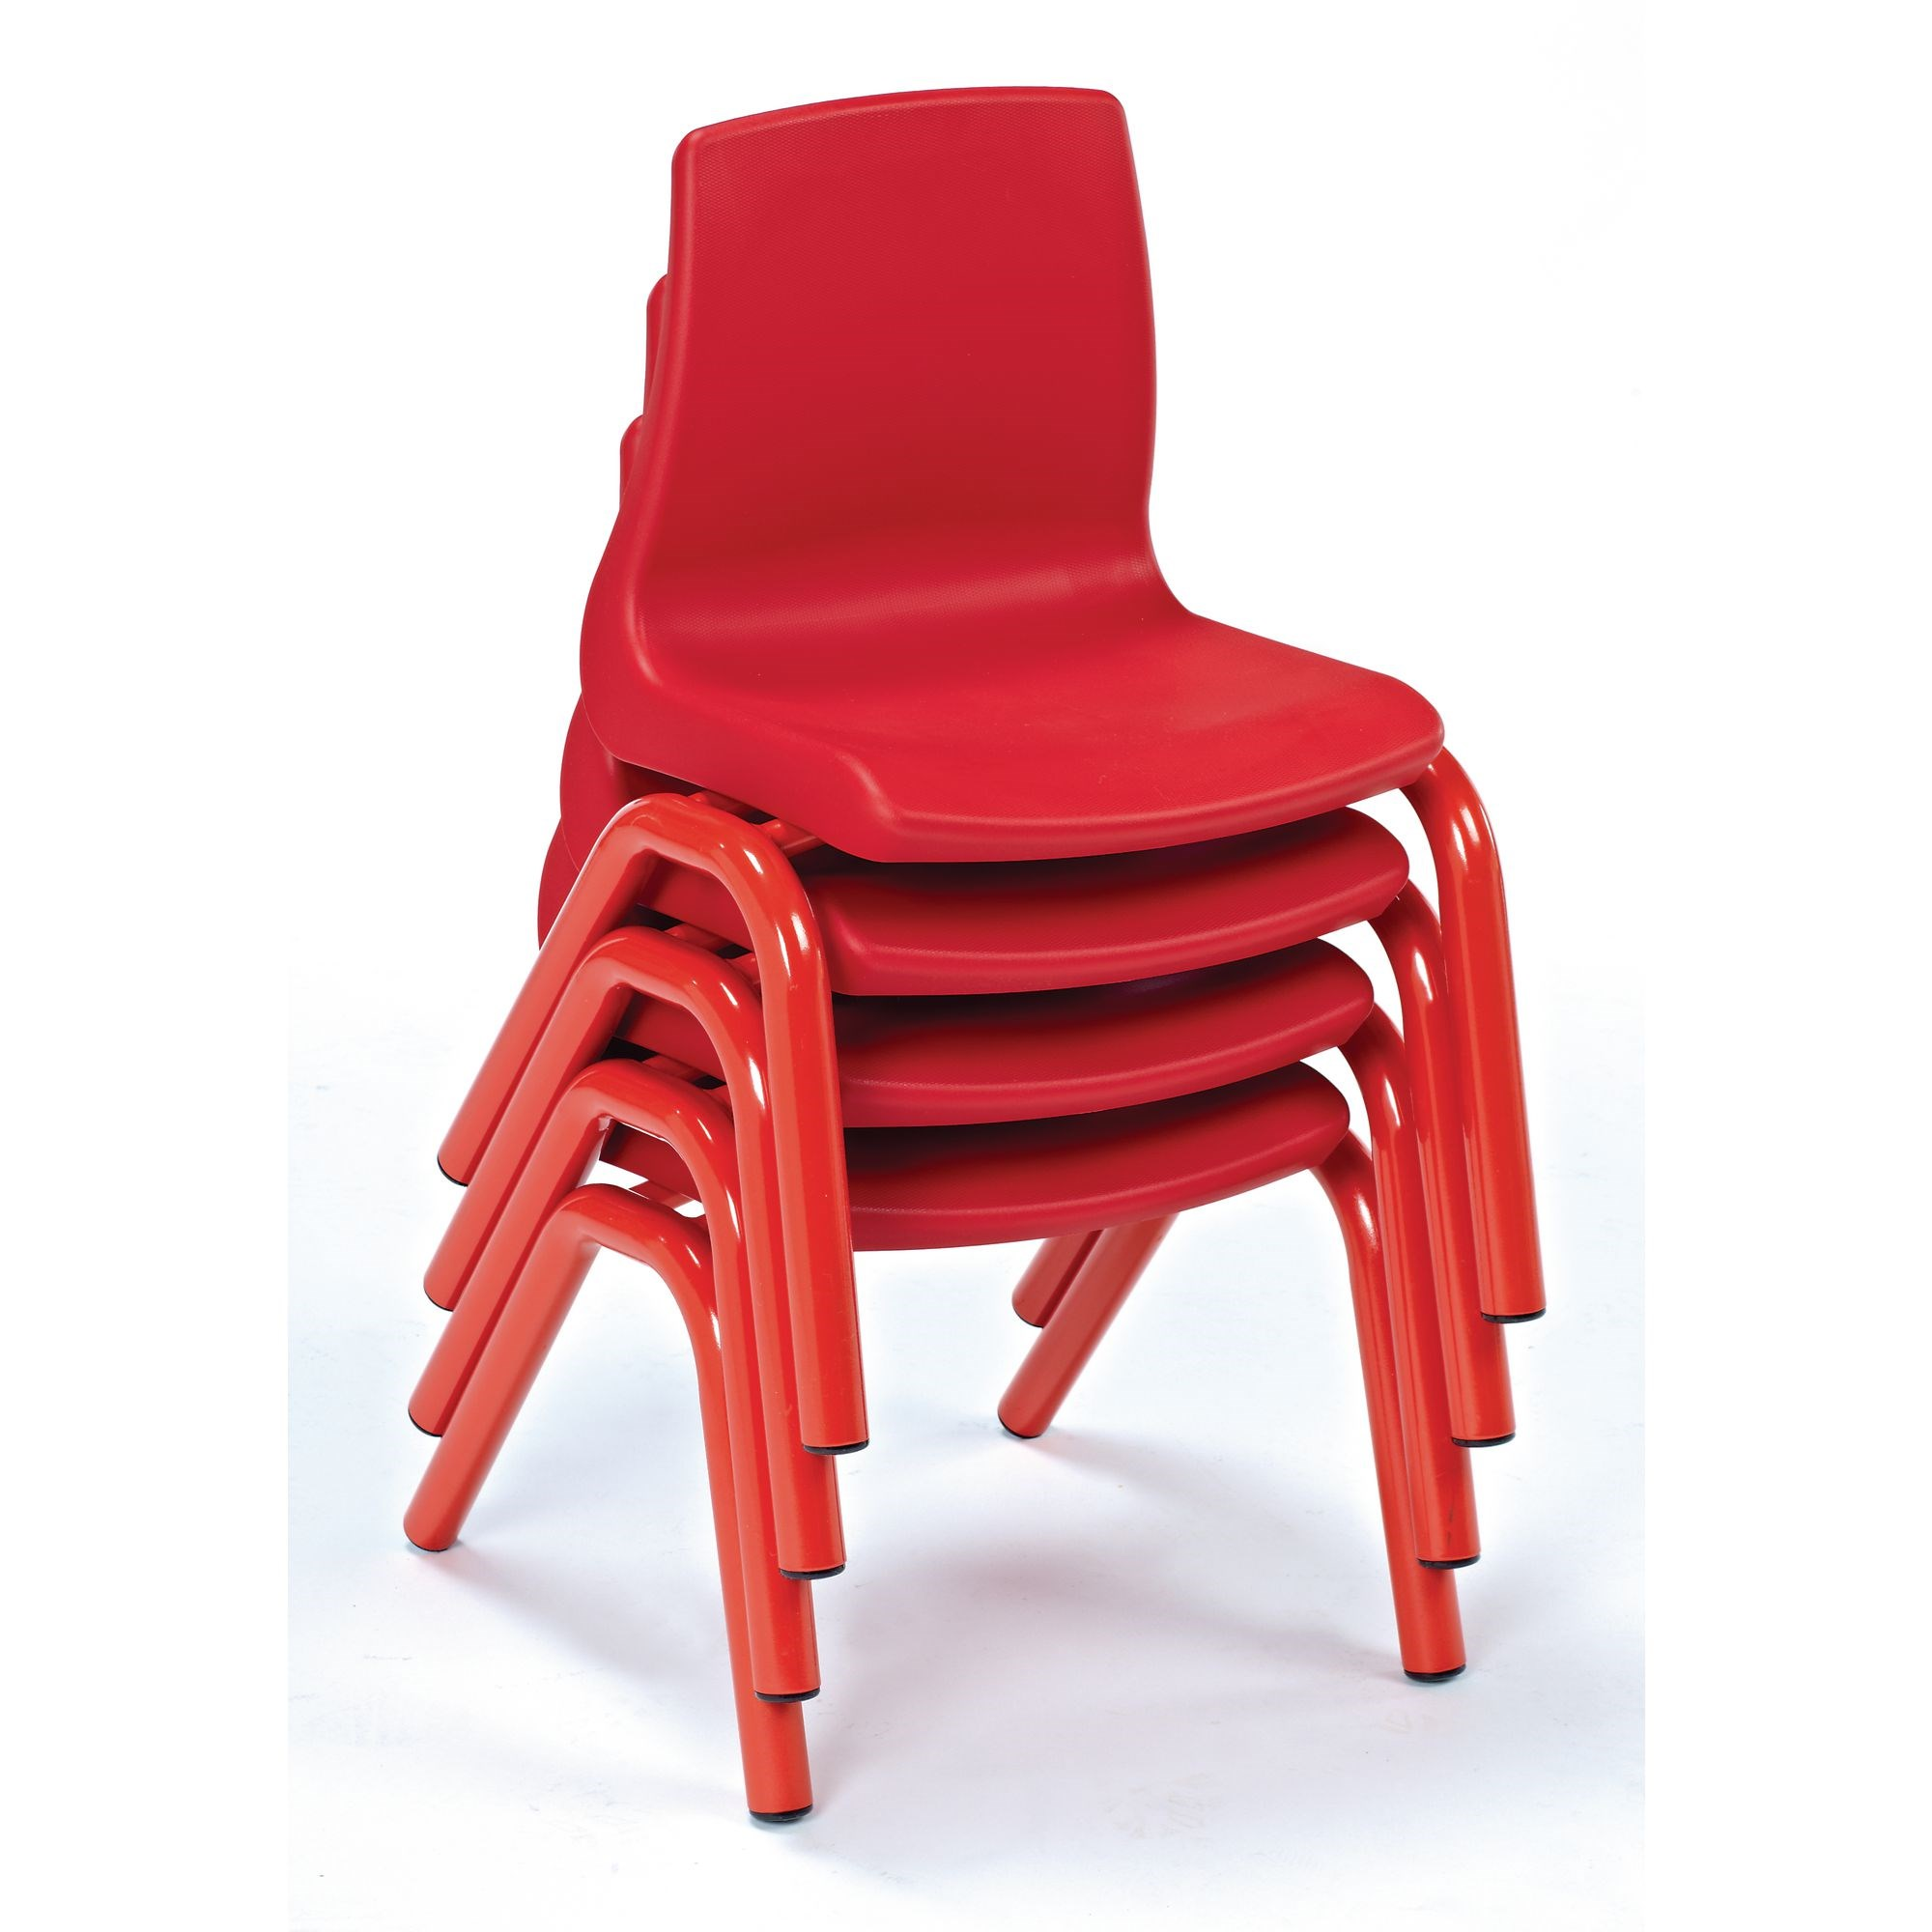 Harlequin Chairs Preschool Red